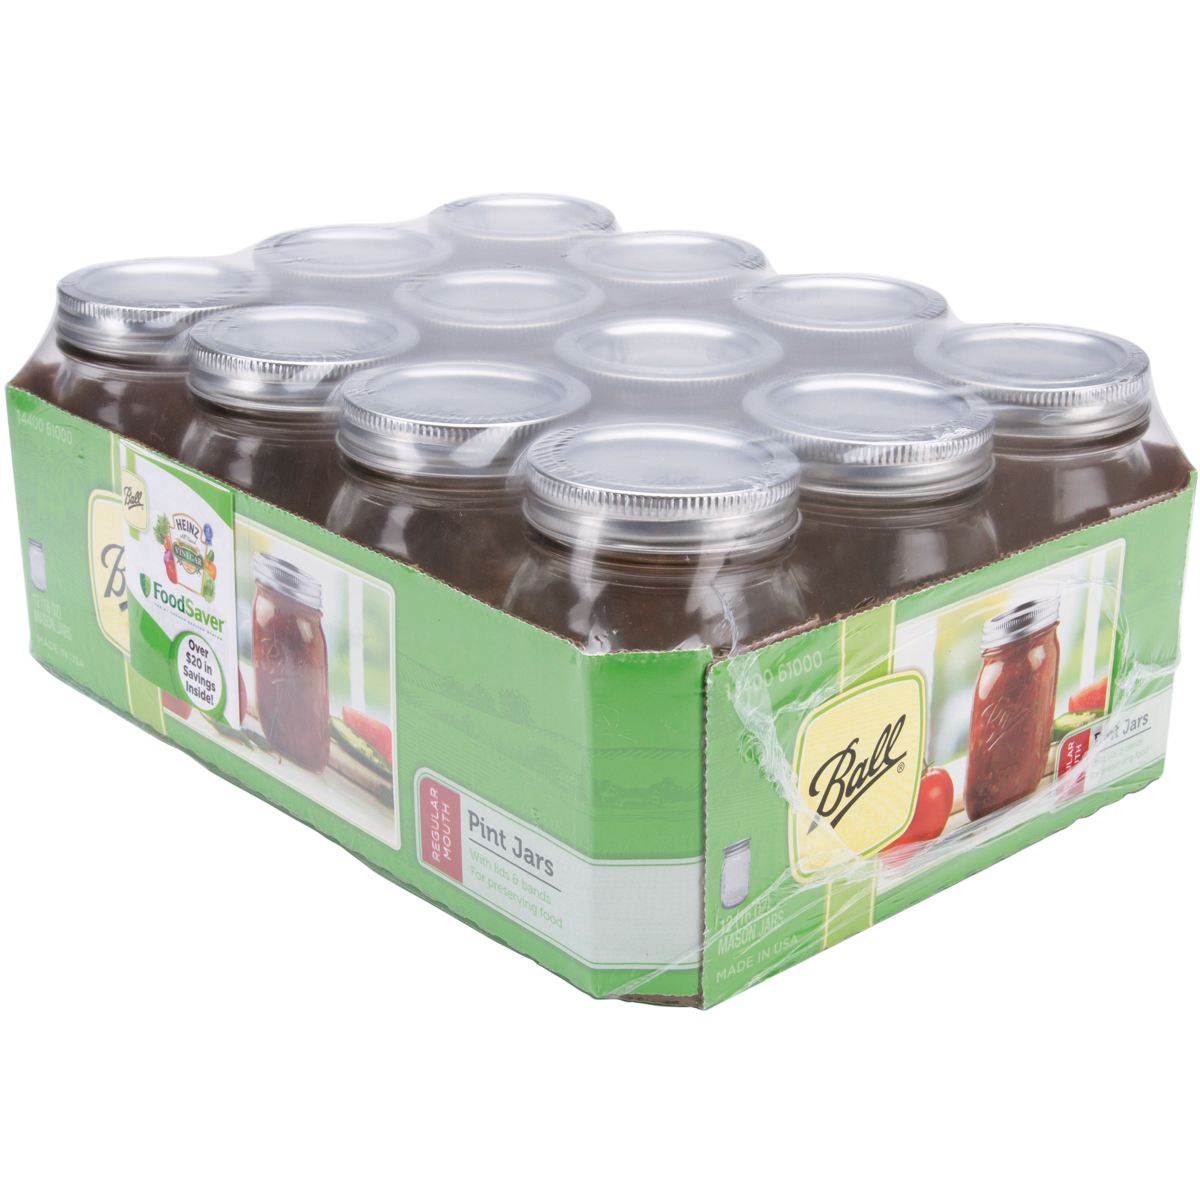 Ball Mason Jars 12 pk Only $6.